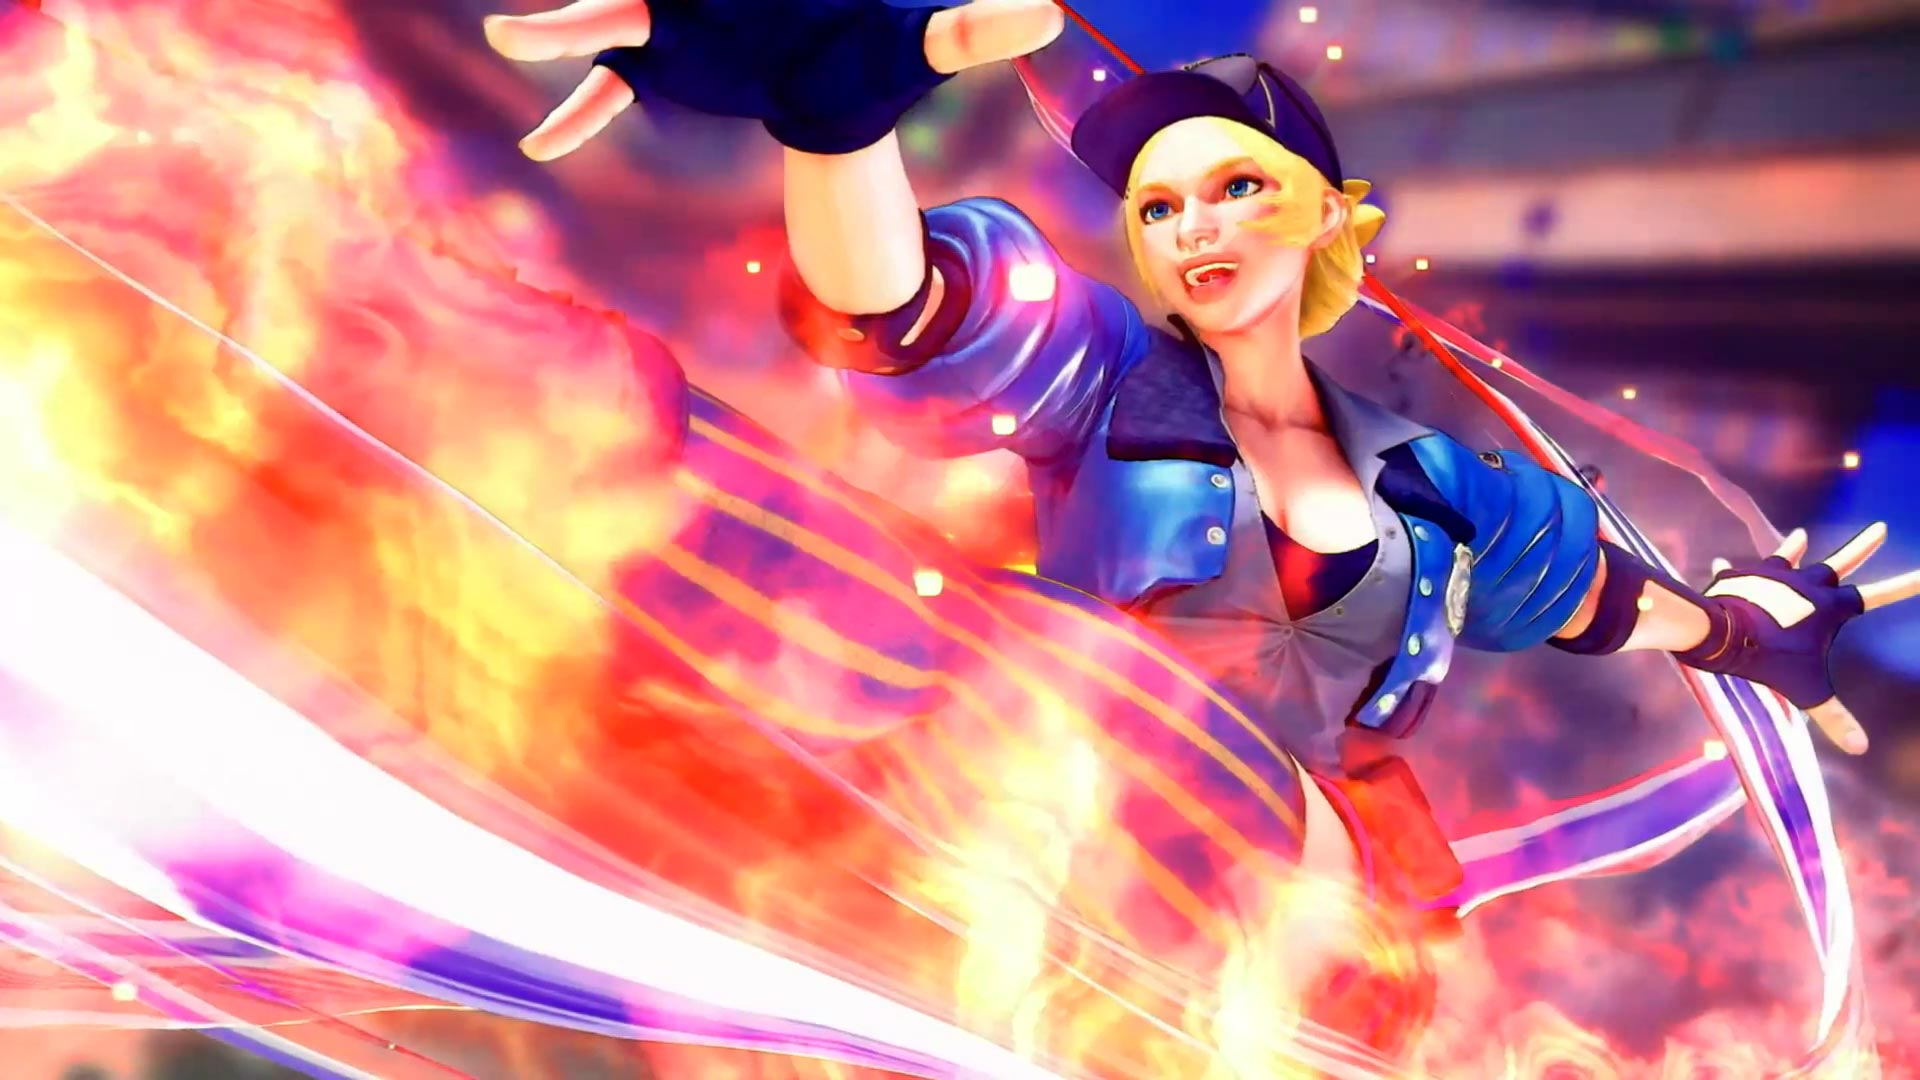 Street Fighter 5 leaked gallery of E. Honda, Lucia and Poison 32 out of 35 image gallery